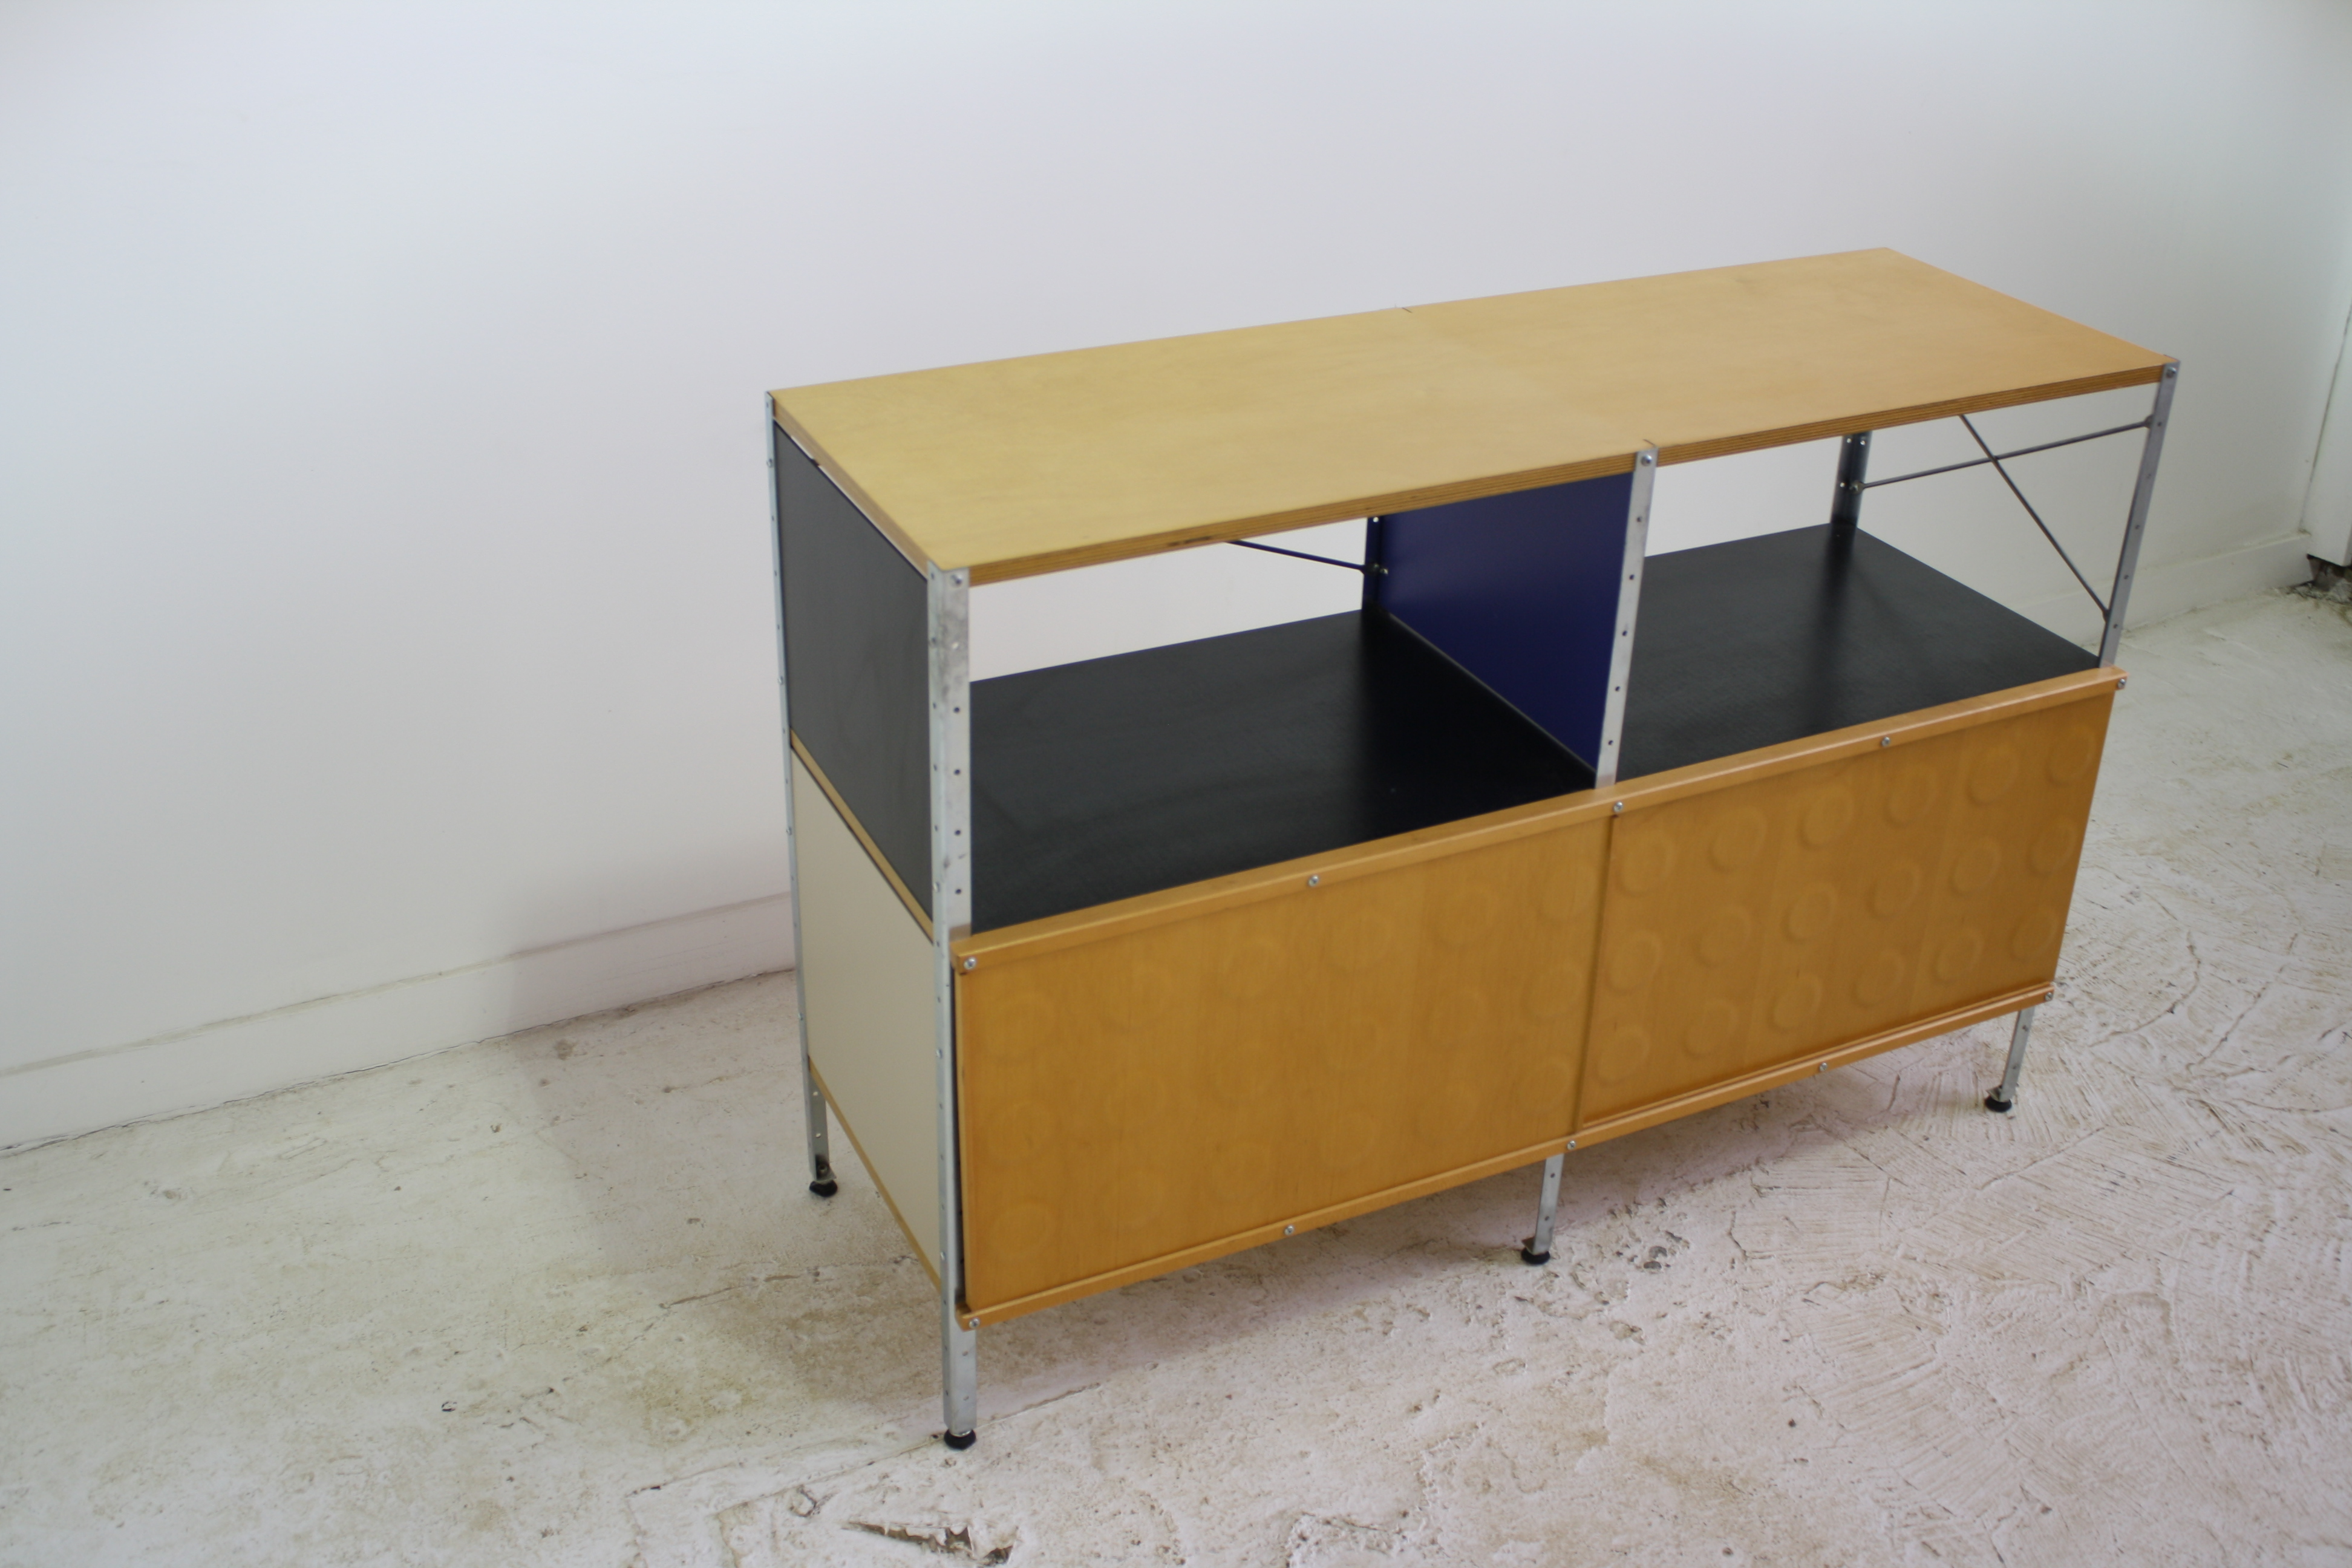 Eames Herman Miller Storage Unit 2x2   19 Avail.   Image 5 Of 8